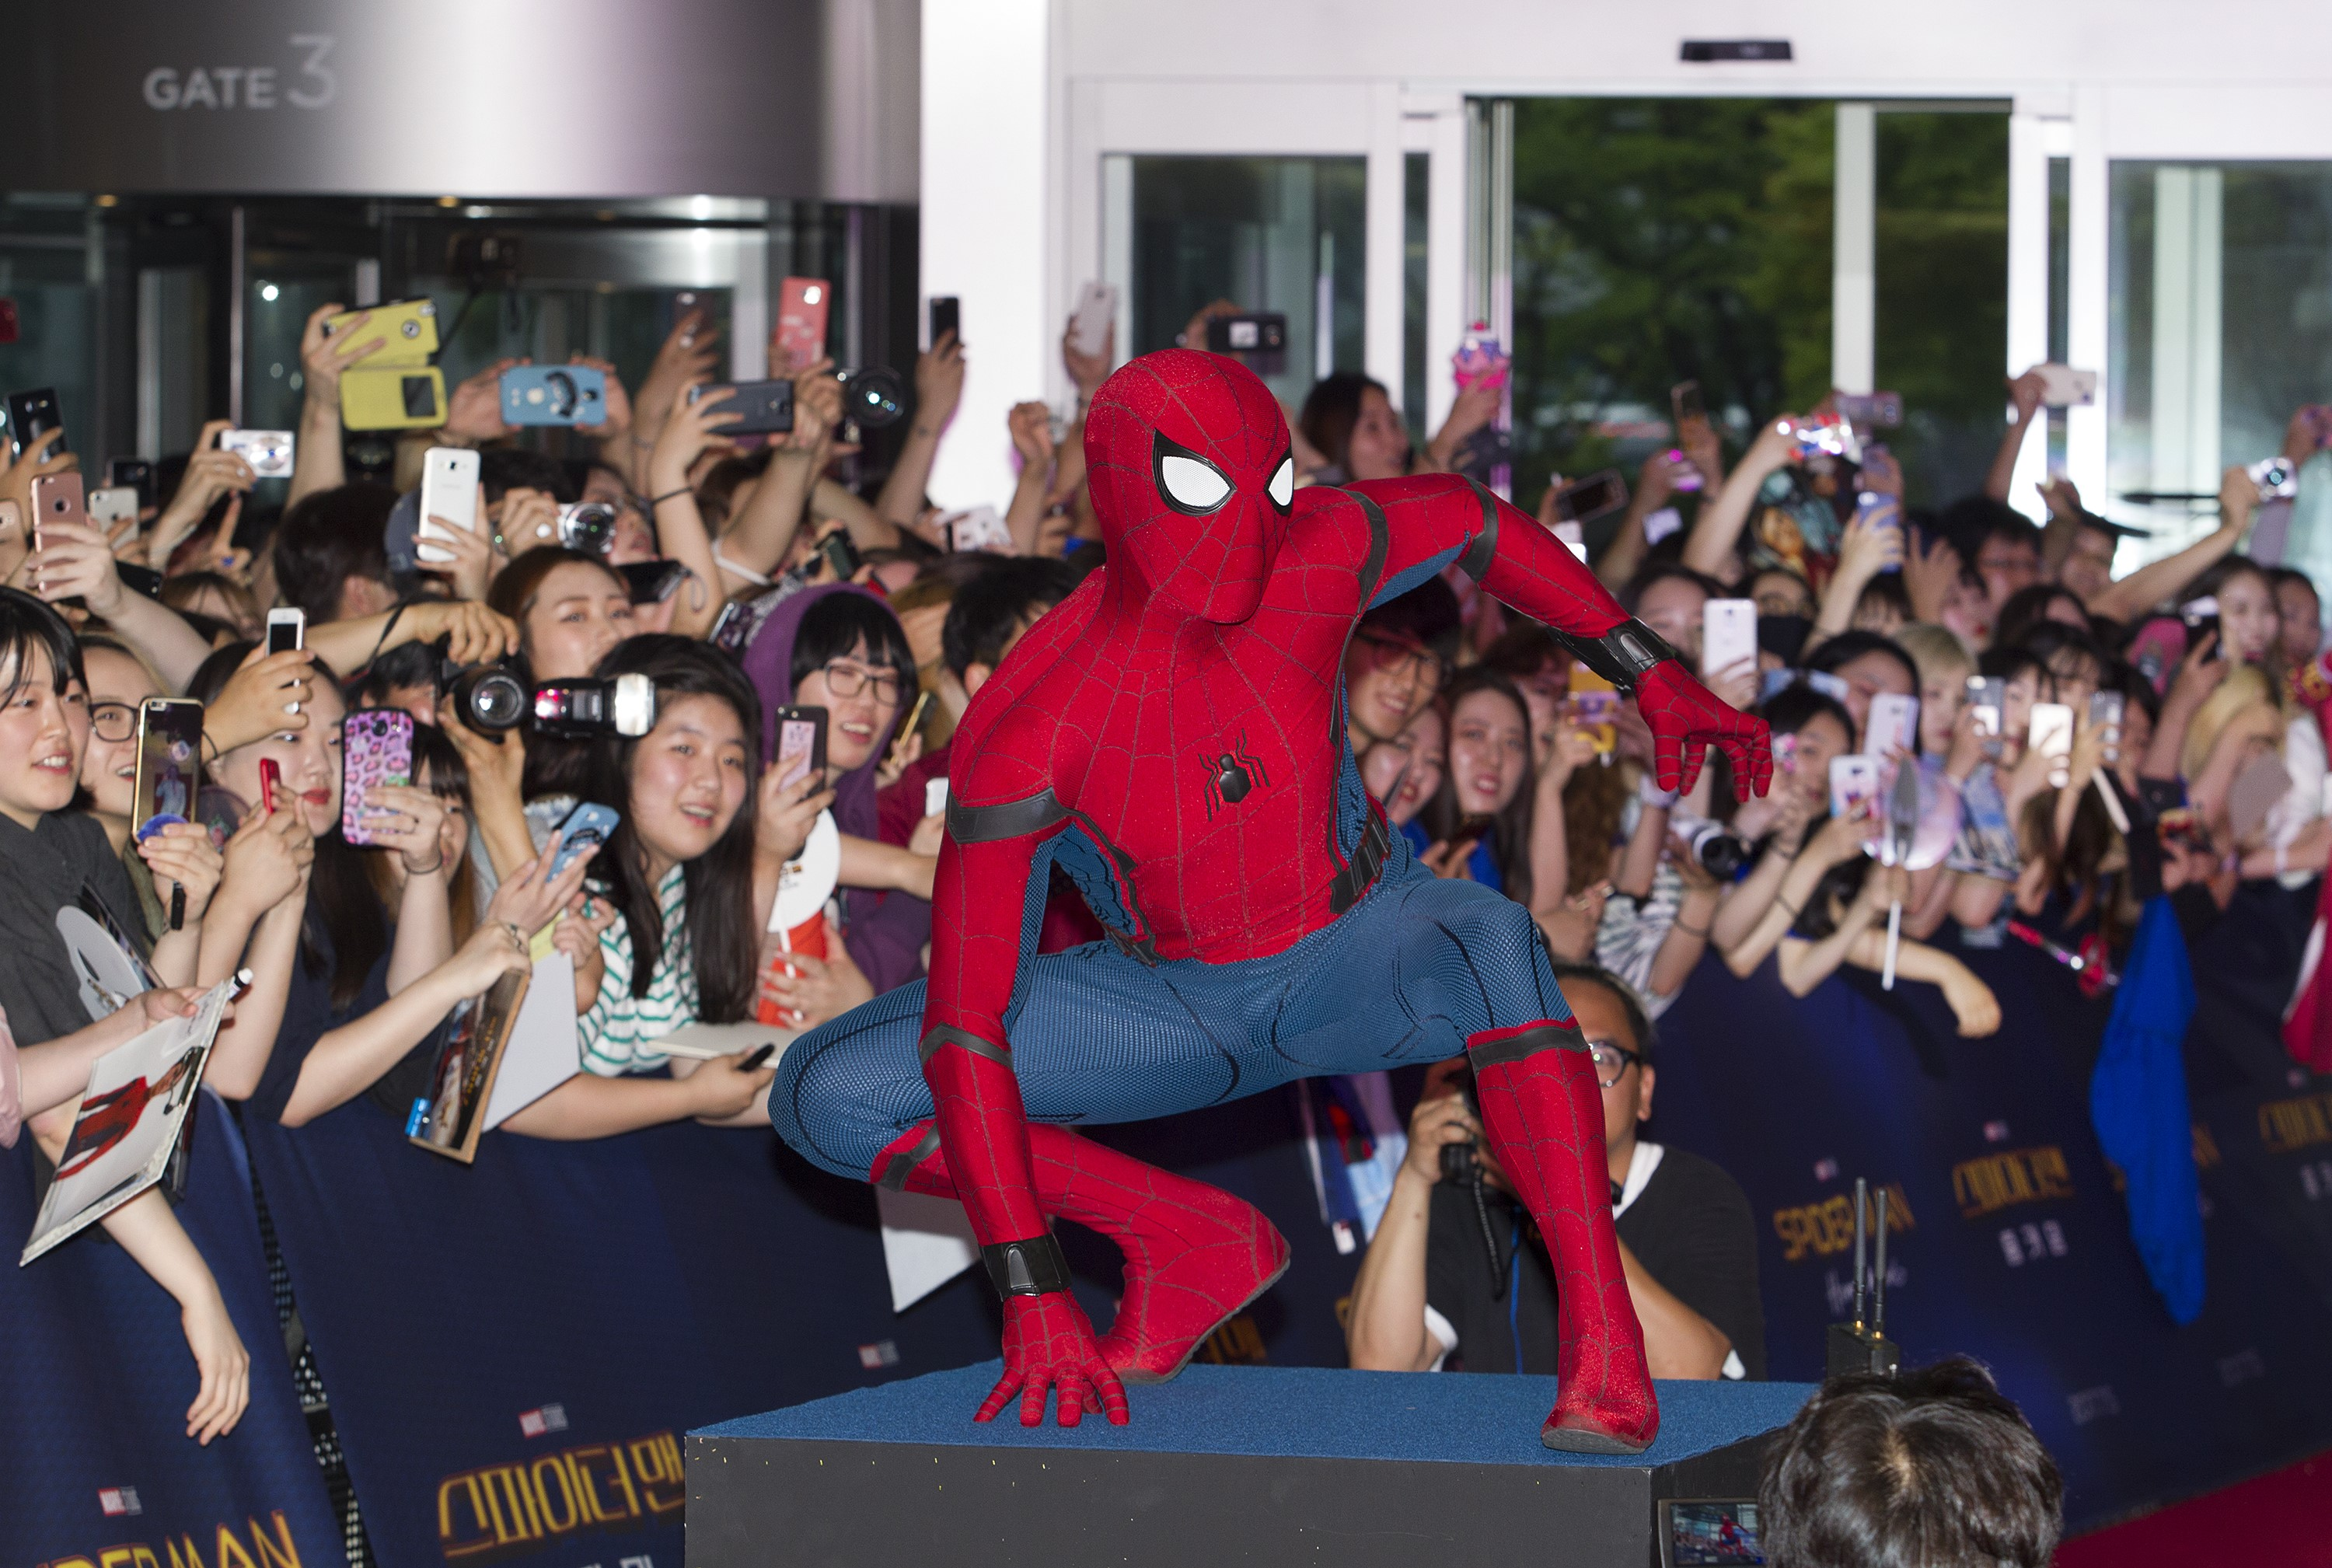 SEOUL - SOUTH KOREA - JULY 02: A man in Spider-Man costume poses during the Red Carpet Event for 'Spider-Man : Homecoming' at Times square CGV theater in Seoul, South Korea on July 02, 2017. (Photo by Kim Jong Hyun/Anadolu Agency/Getty Images)